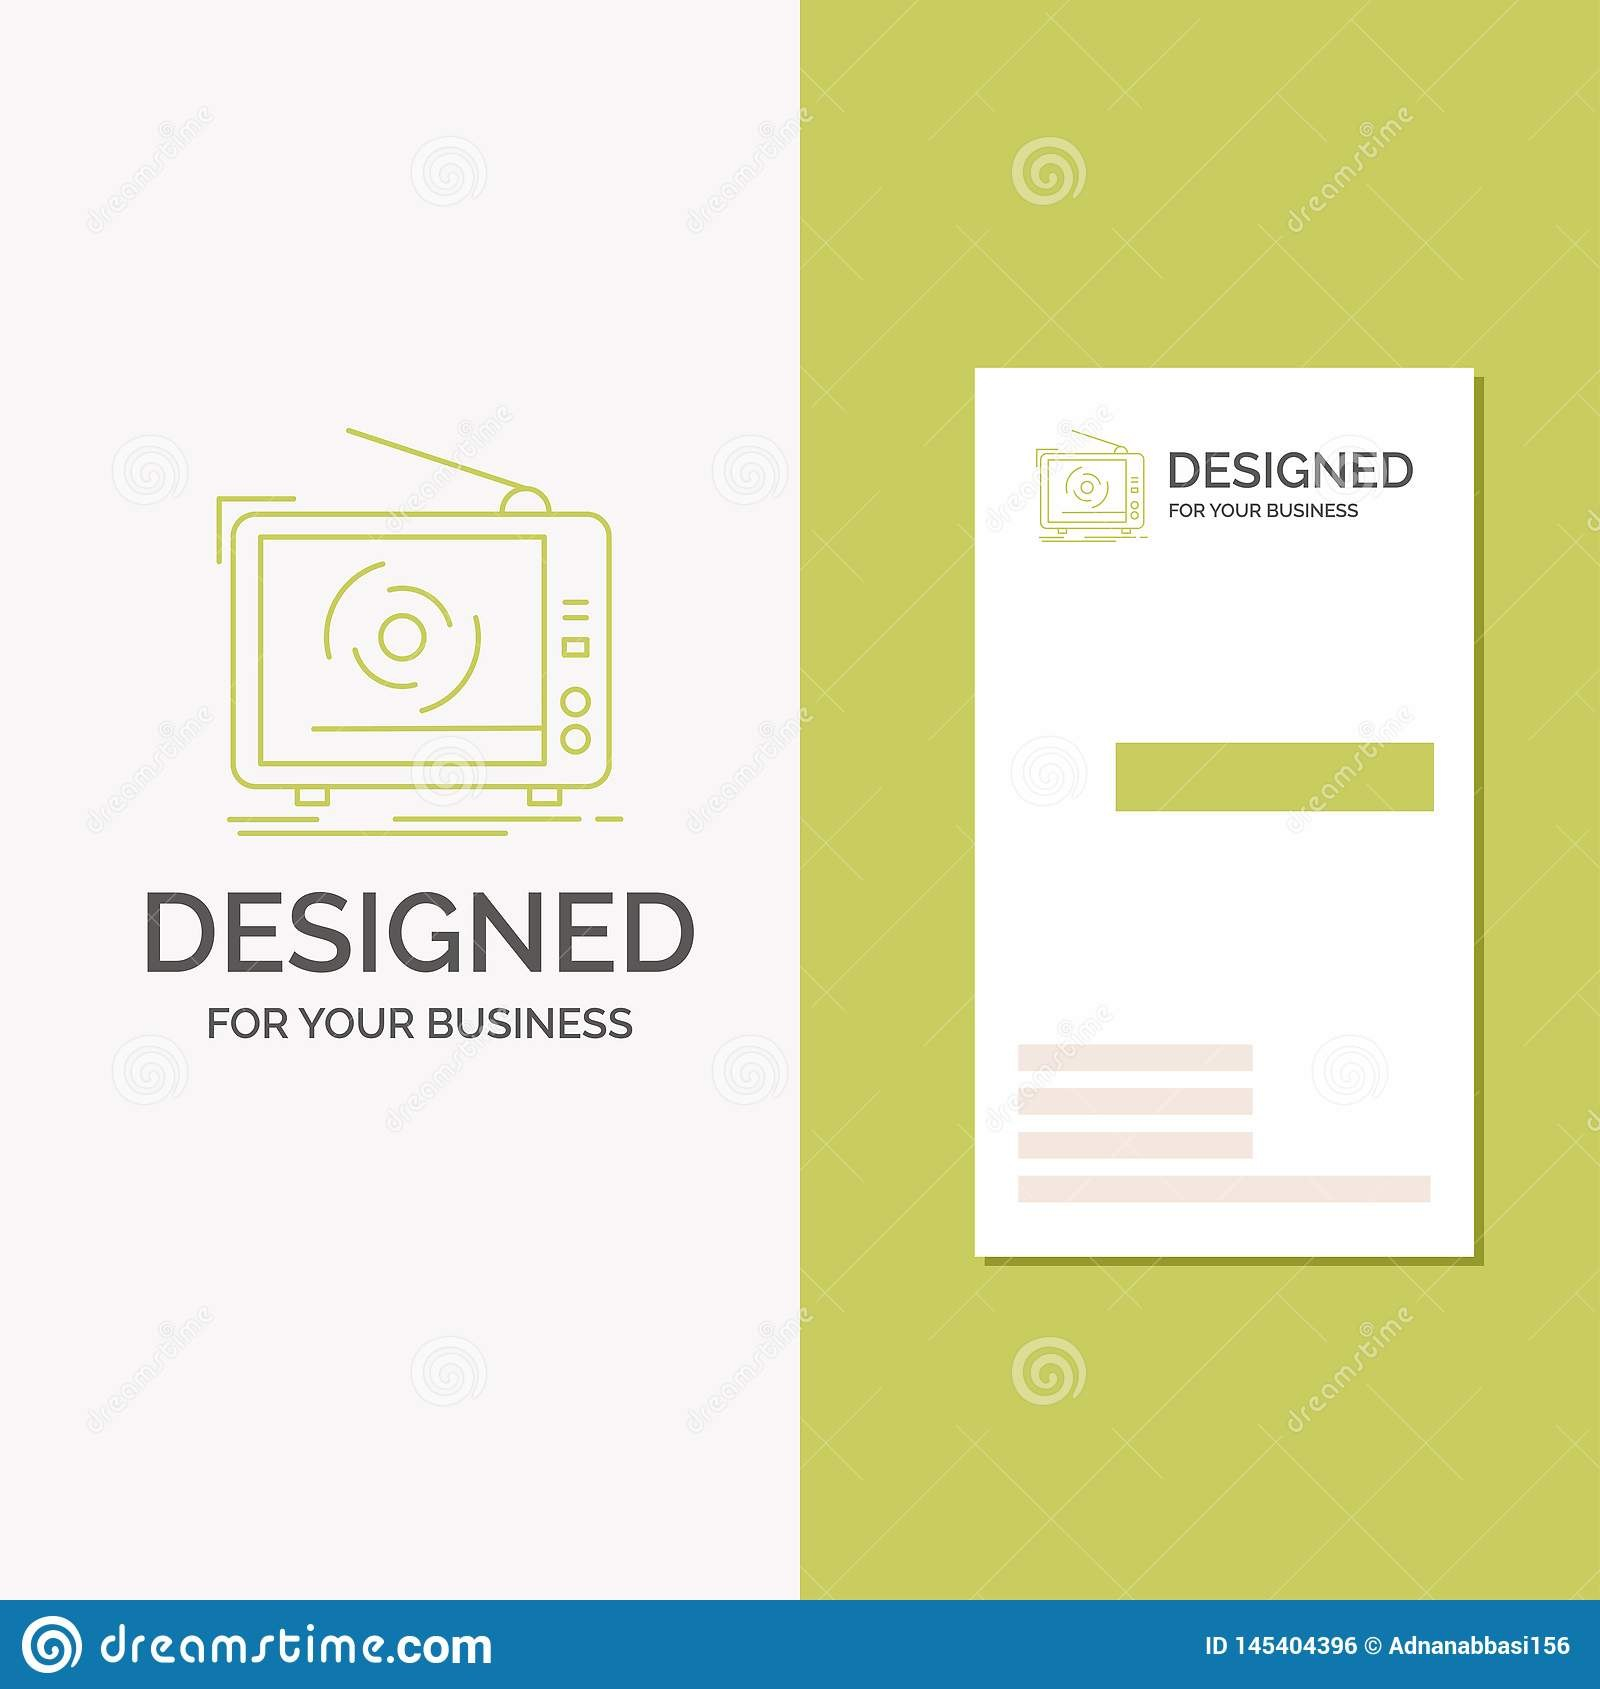 Business Logo For Tv Ad Advertising Television Set Vertical In Advertising Card Template